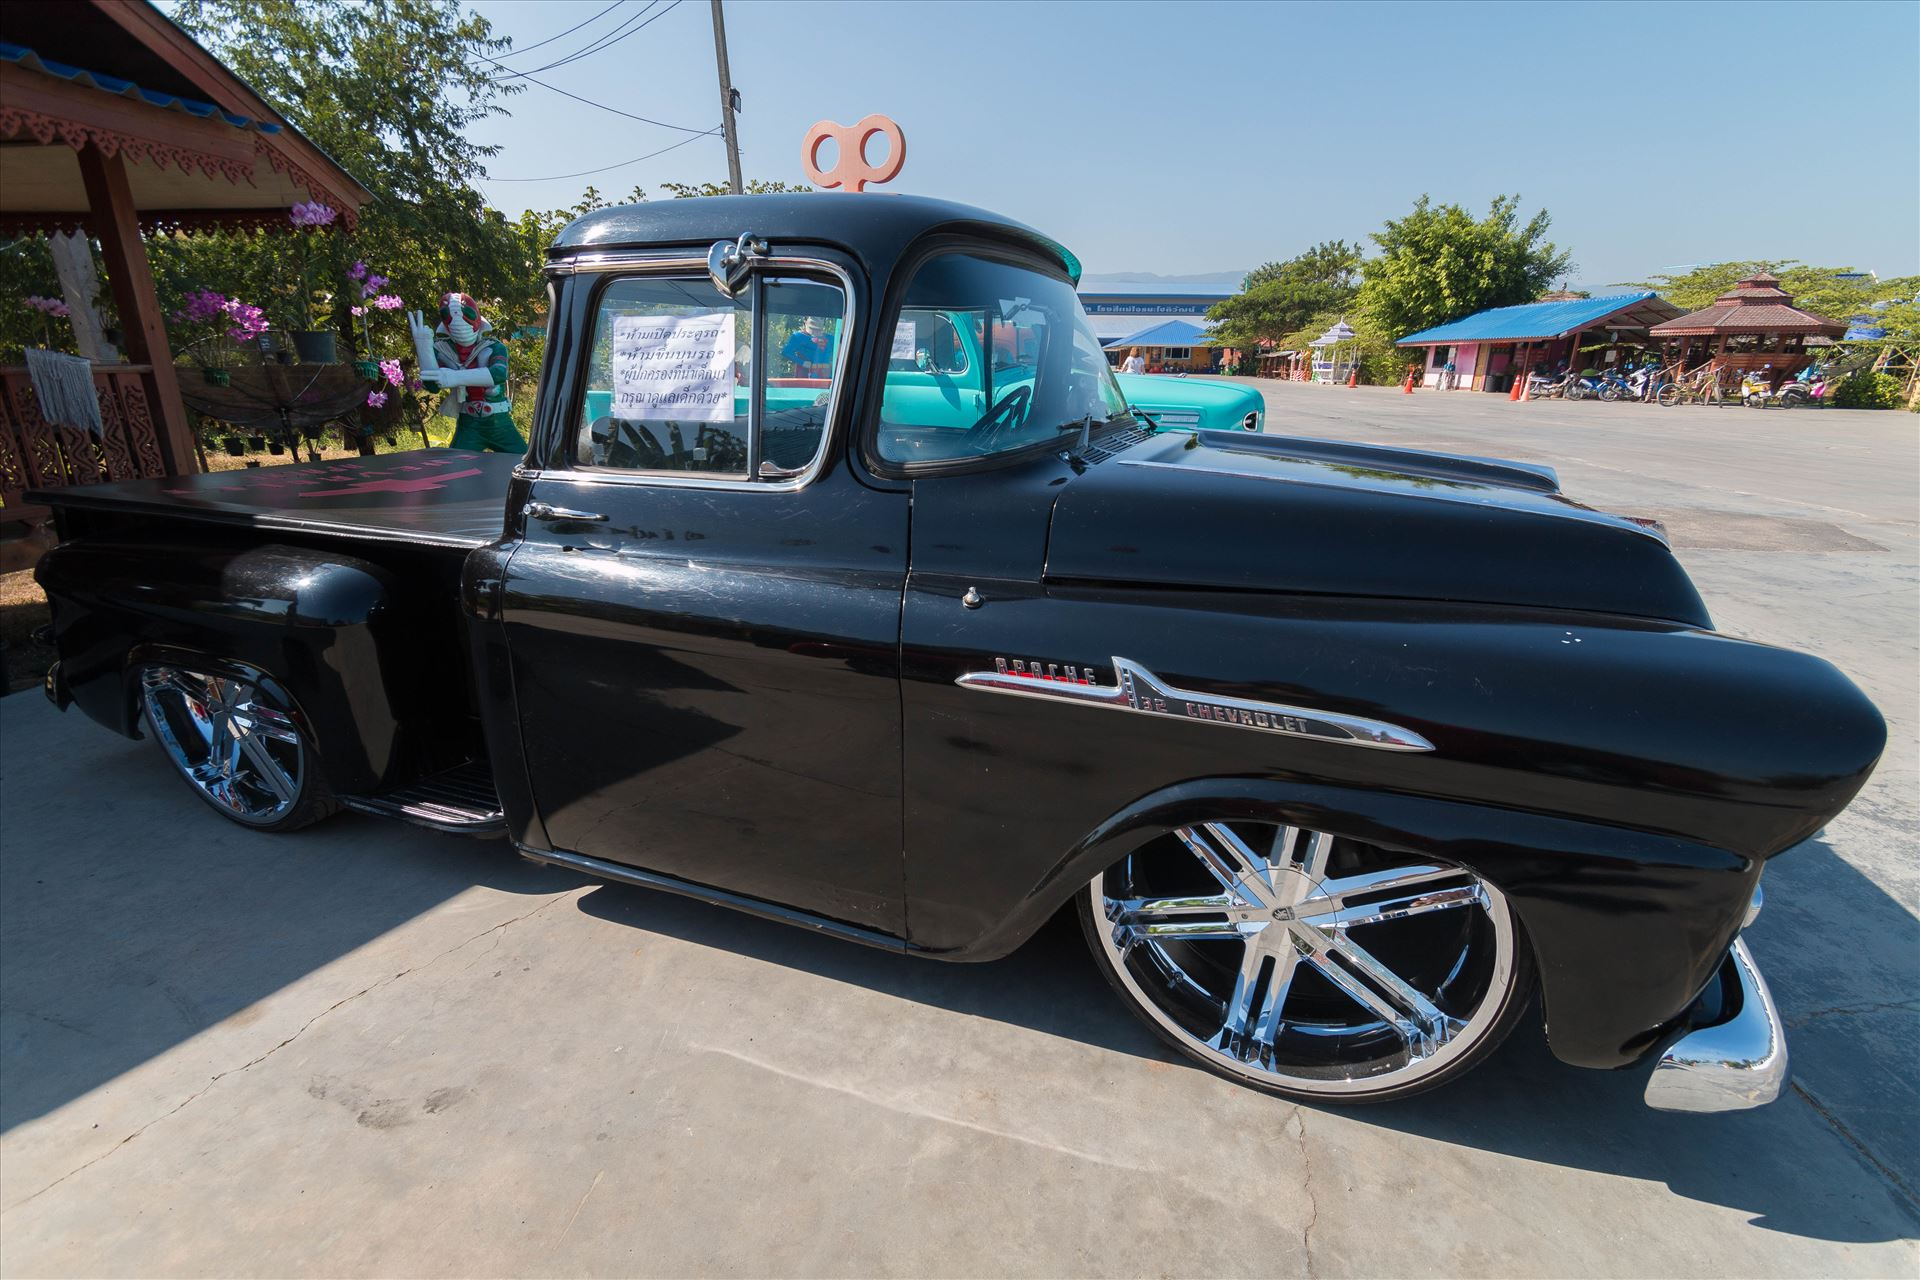 1958 Chevrolet Apache -  by AnnetteJohnsonPhotography